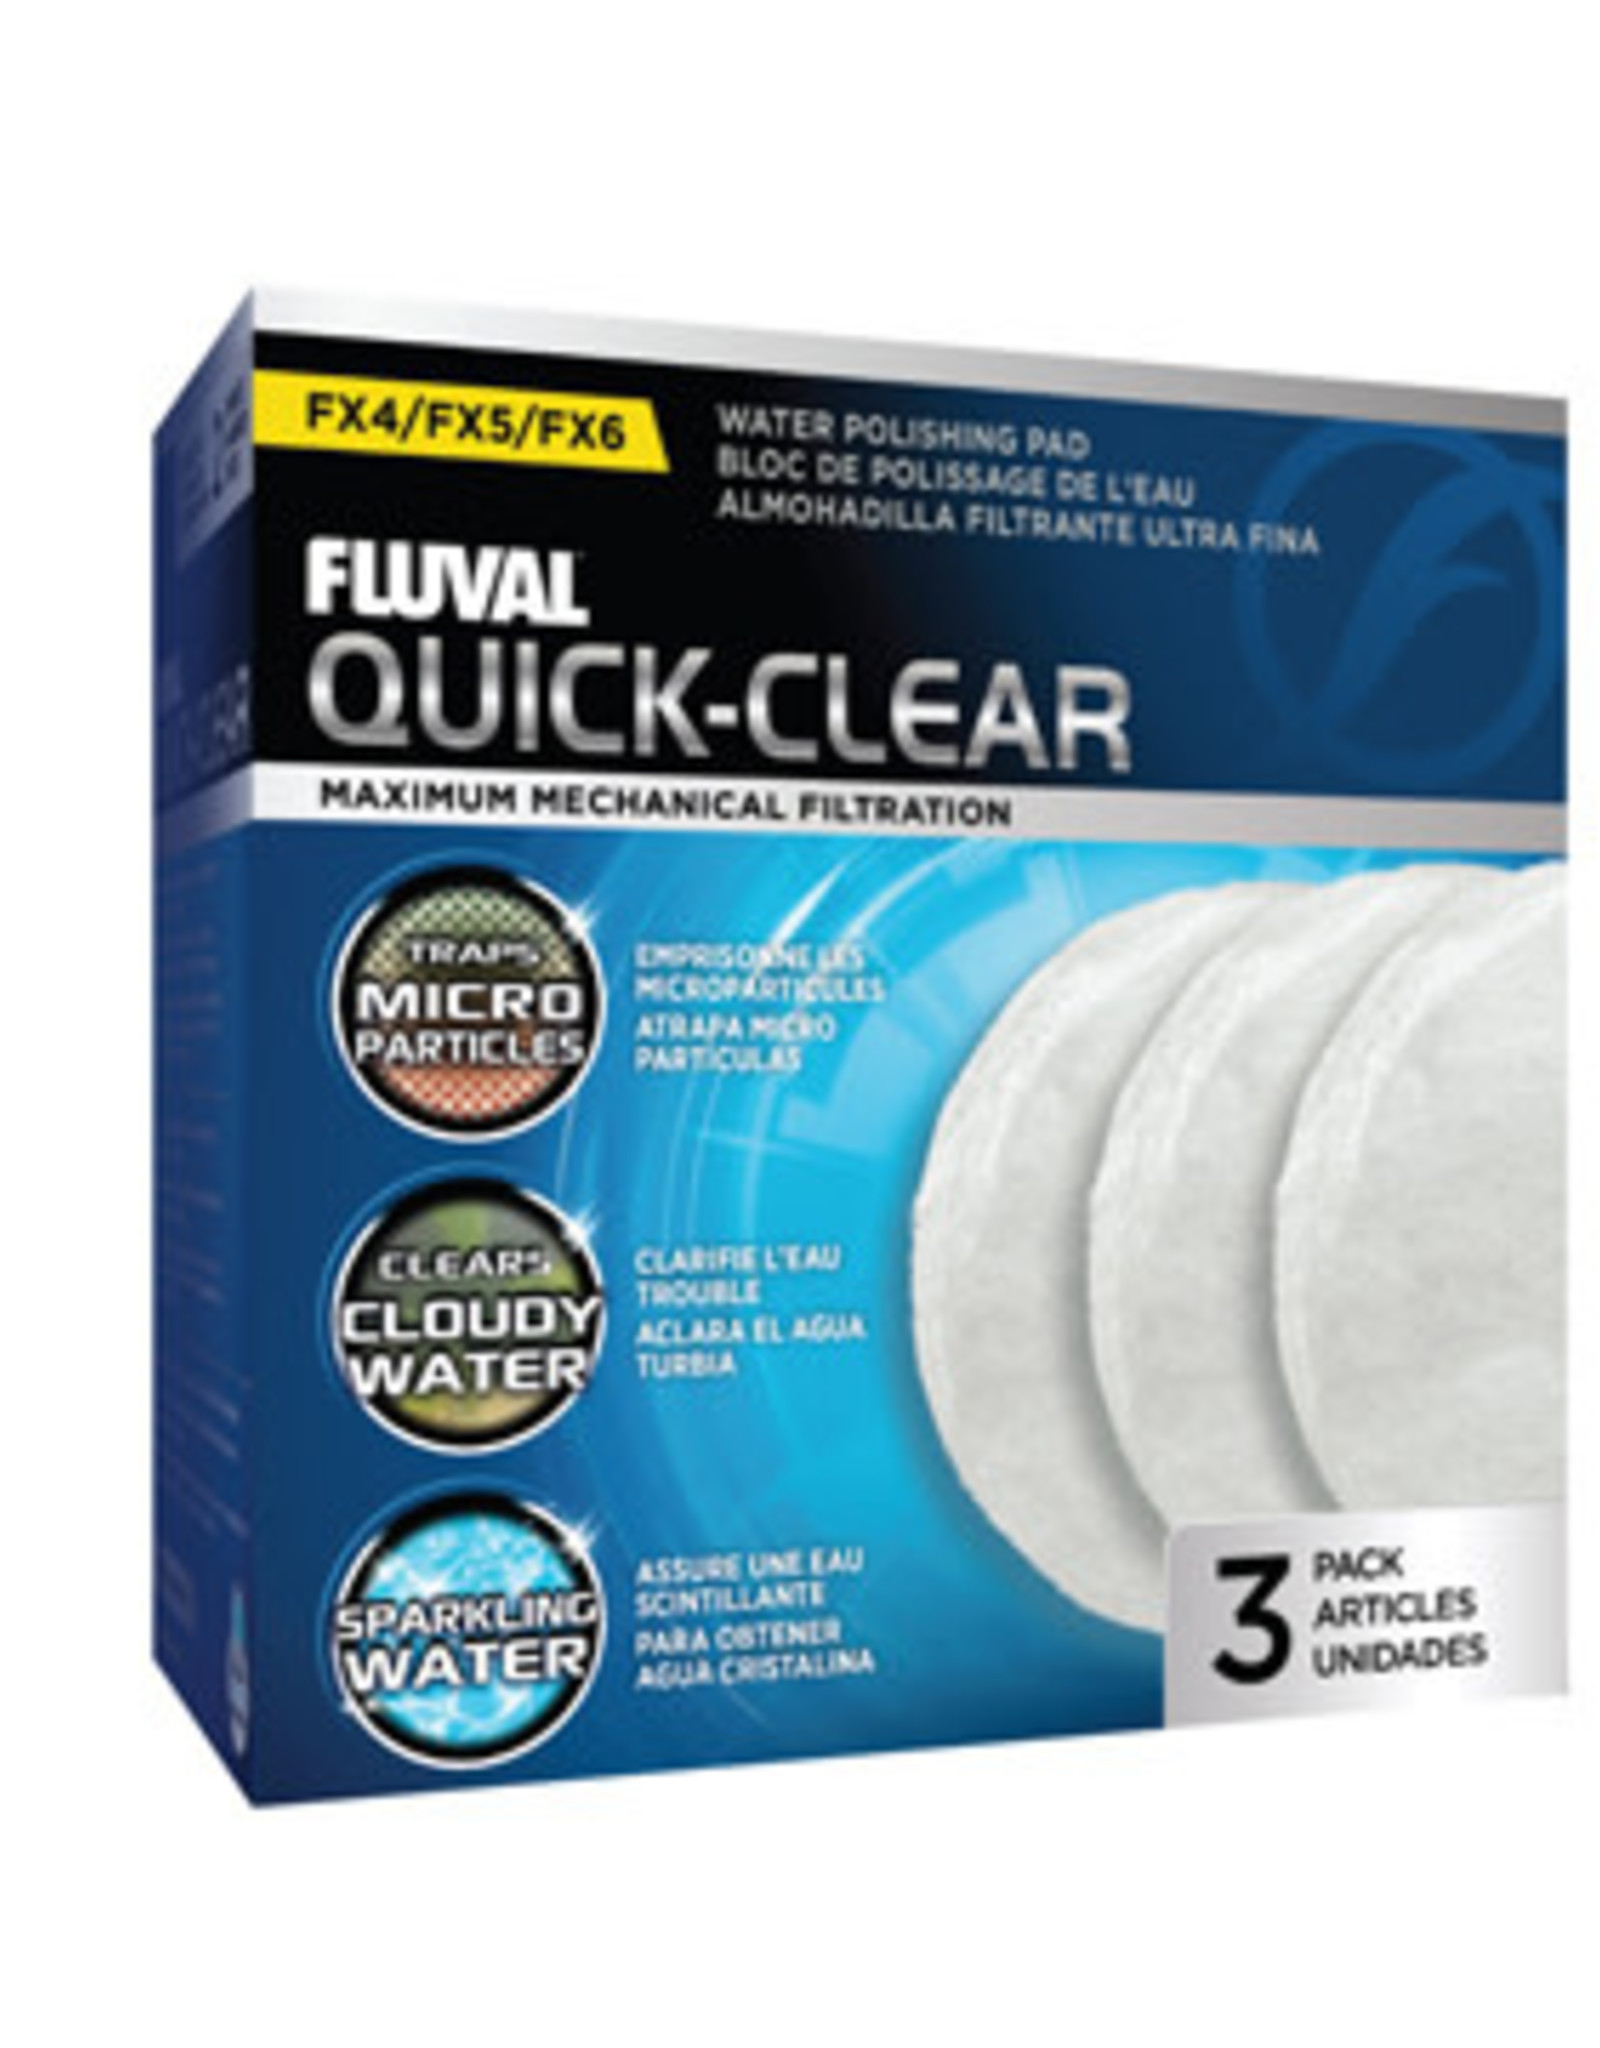 Fluval Quick Clear Water Polishing Pads - 3 pack